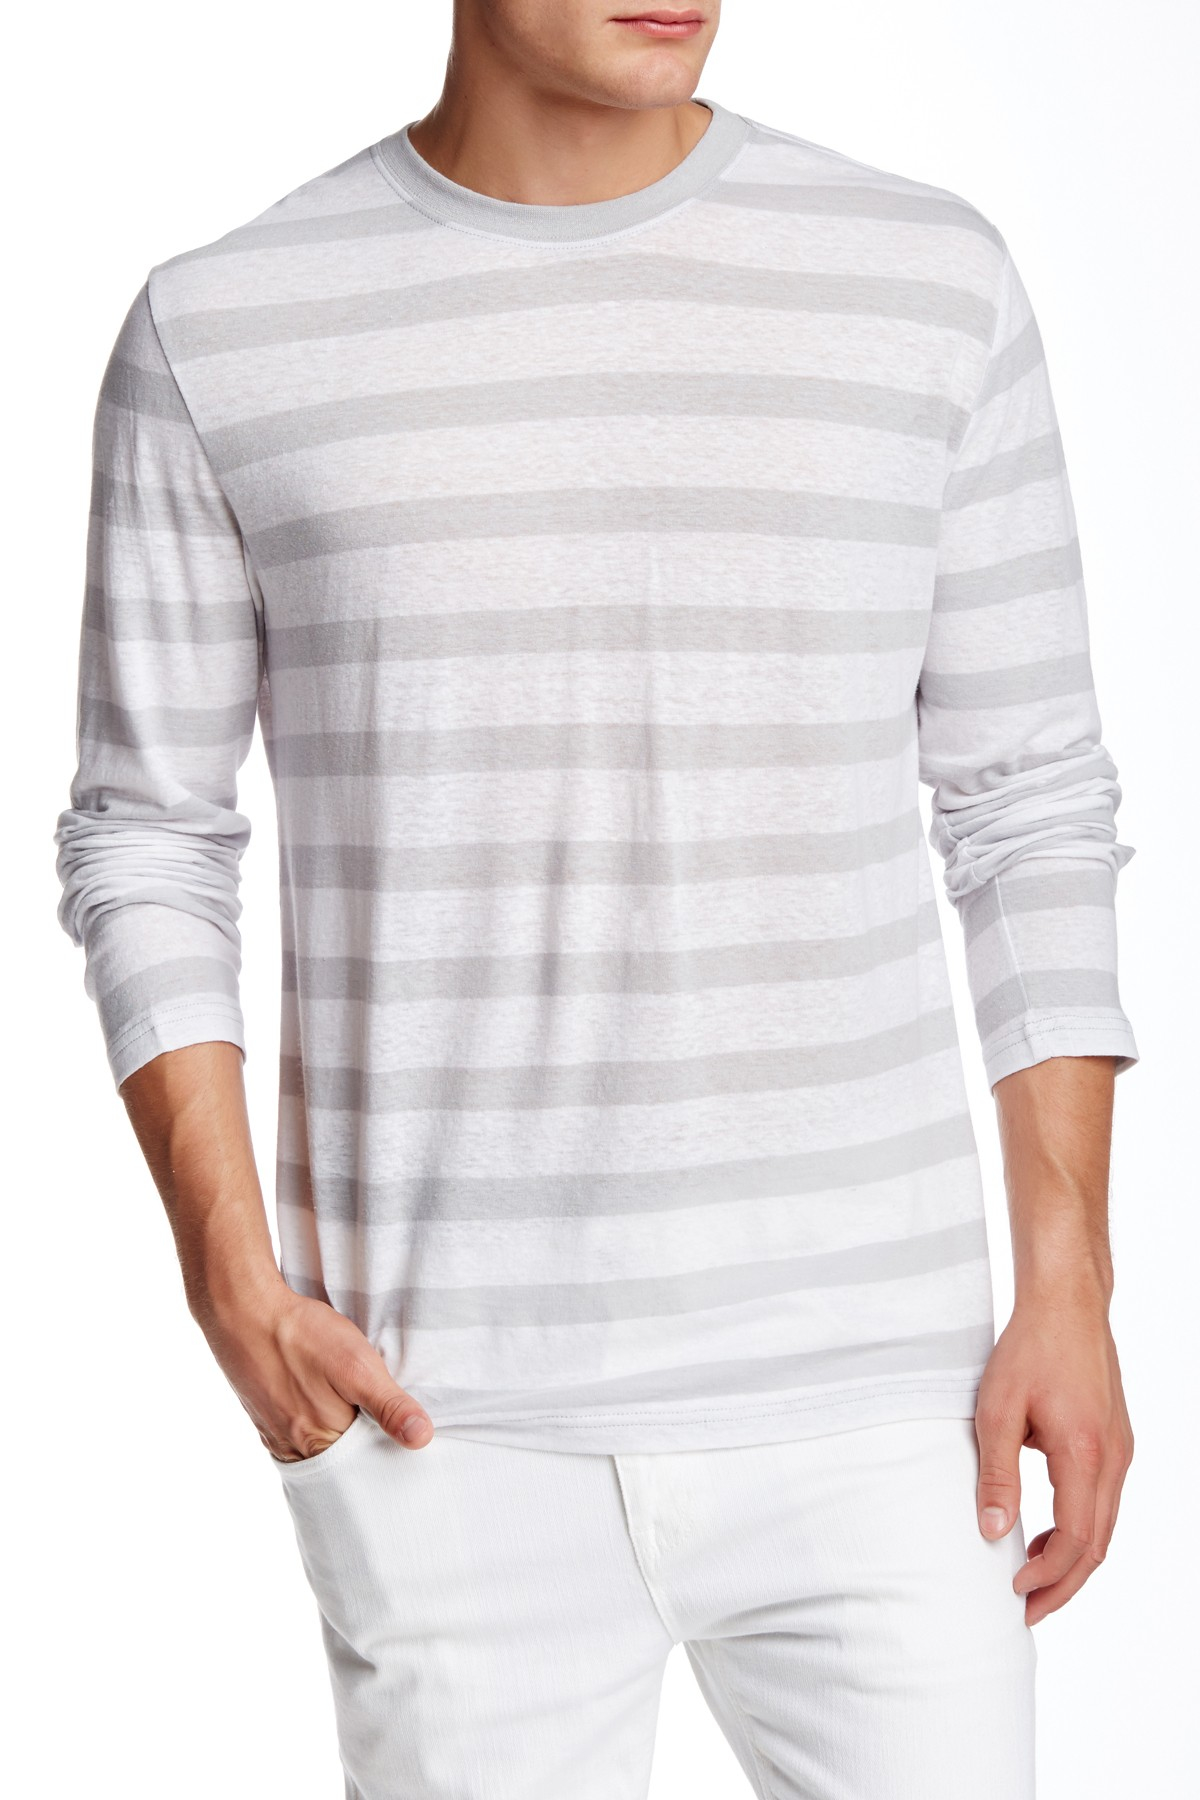 Slate And Stone Clothing : Lyst slate stone striped long sleeve tee in gray for men